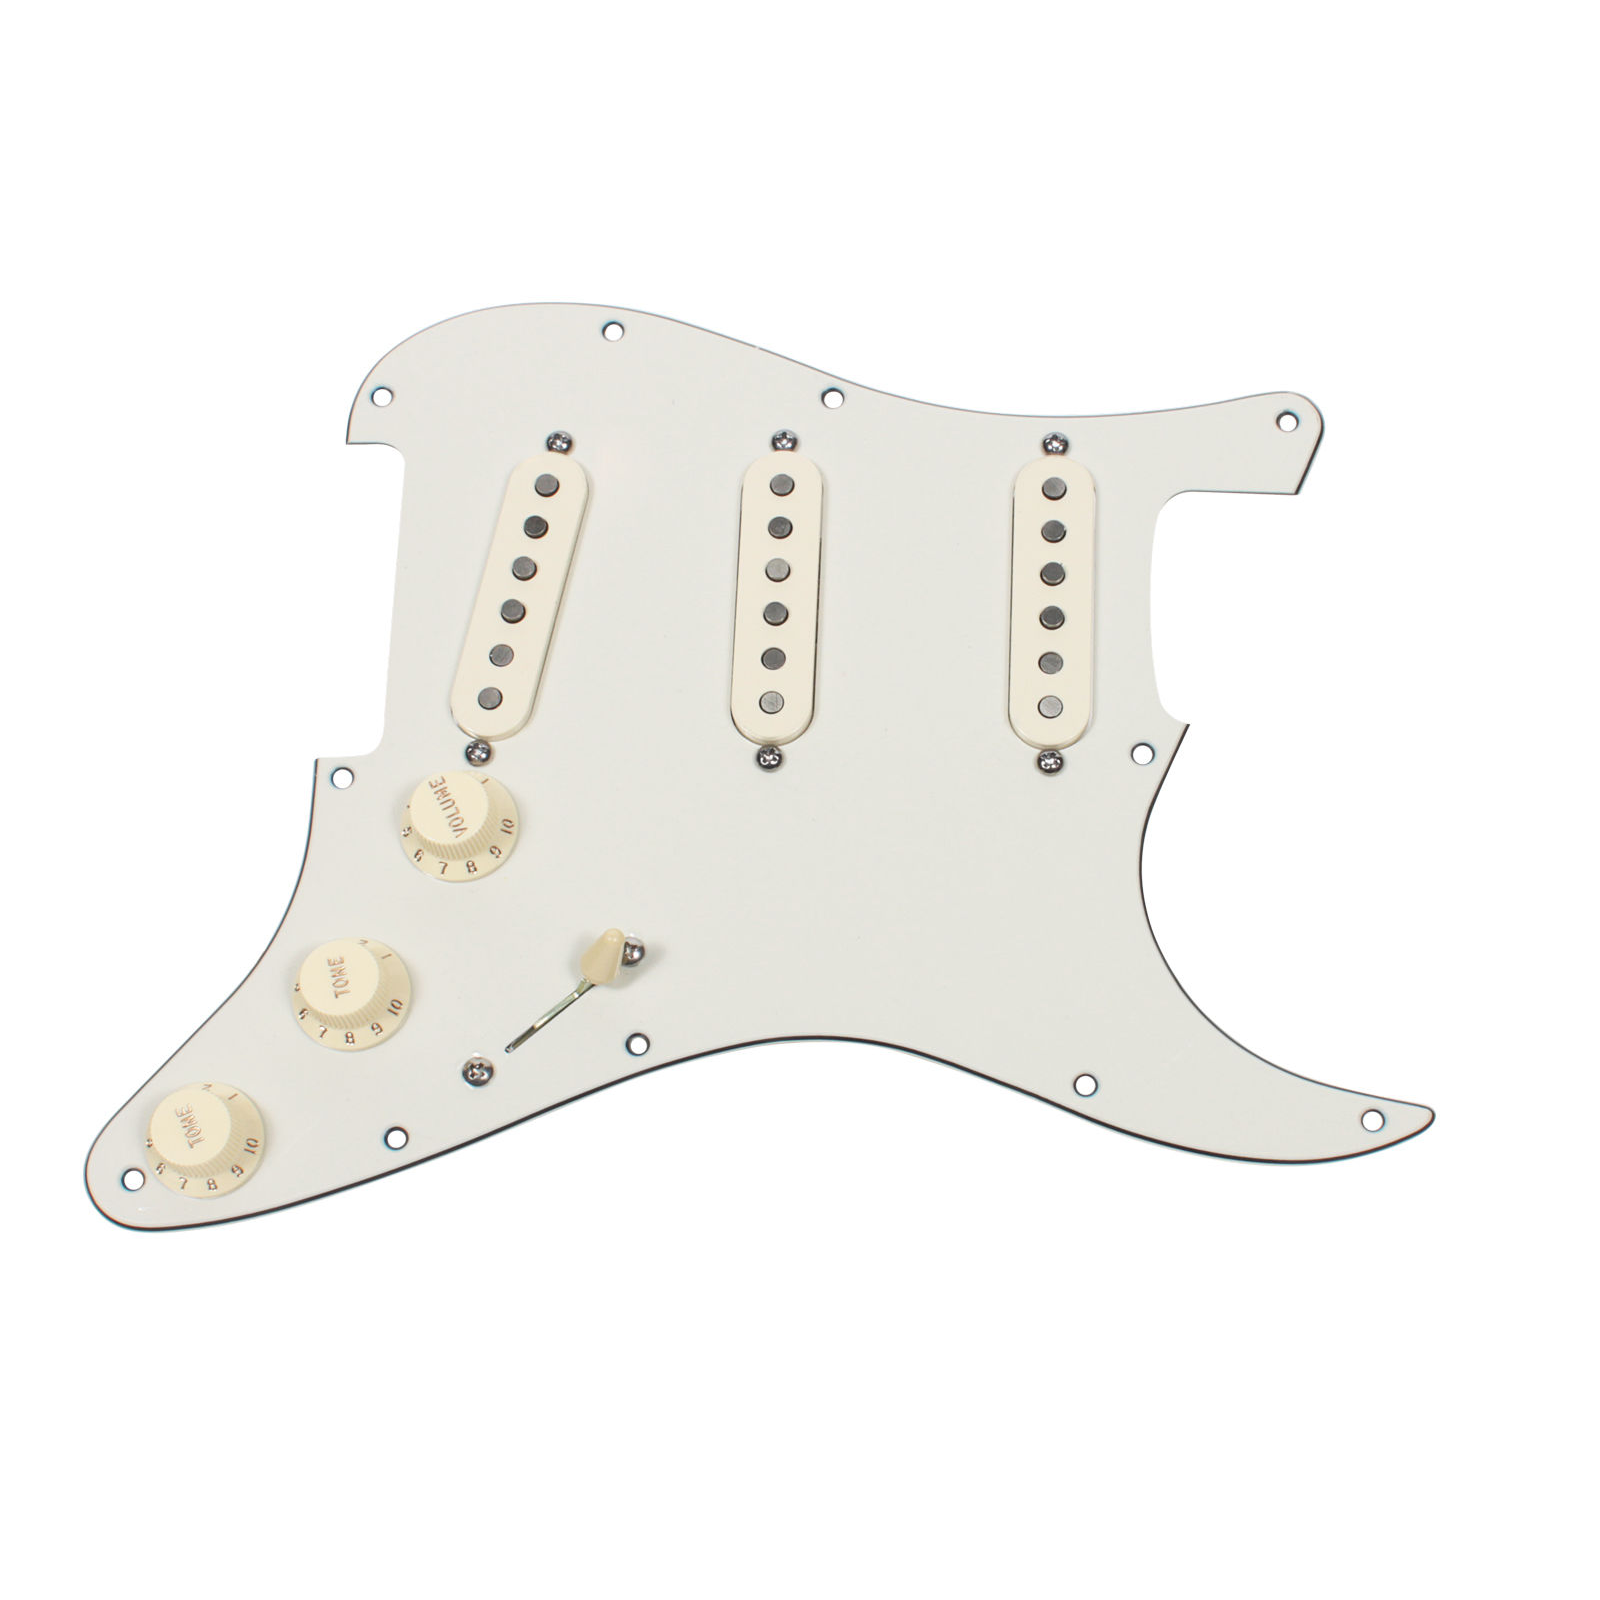 Seymour Duncan SSL-1 Loaded Strat Pickguard Strat PA AW by